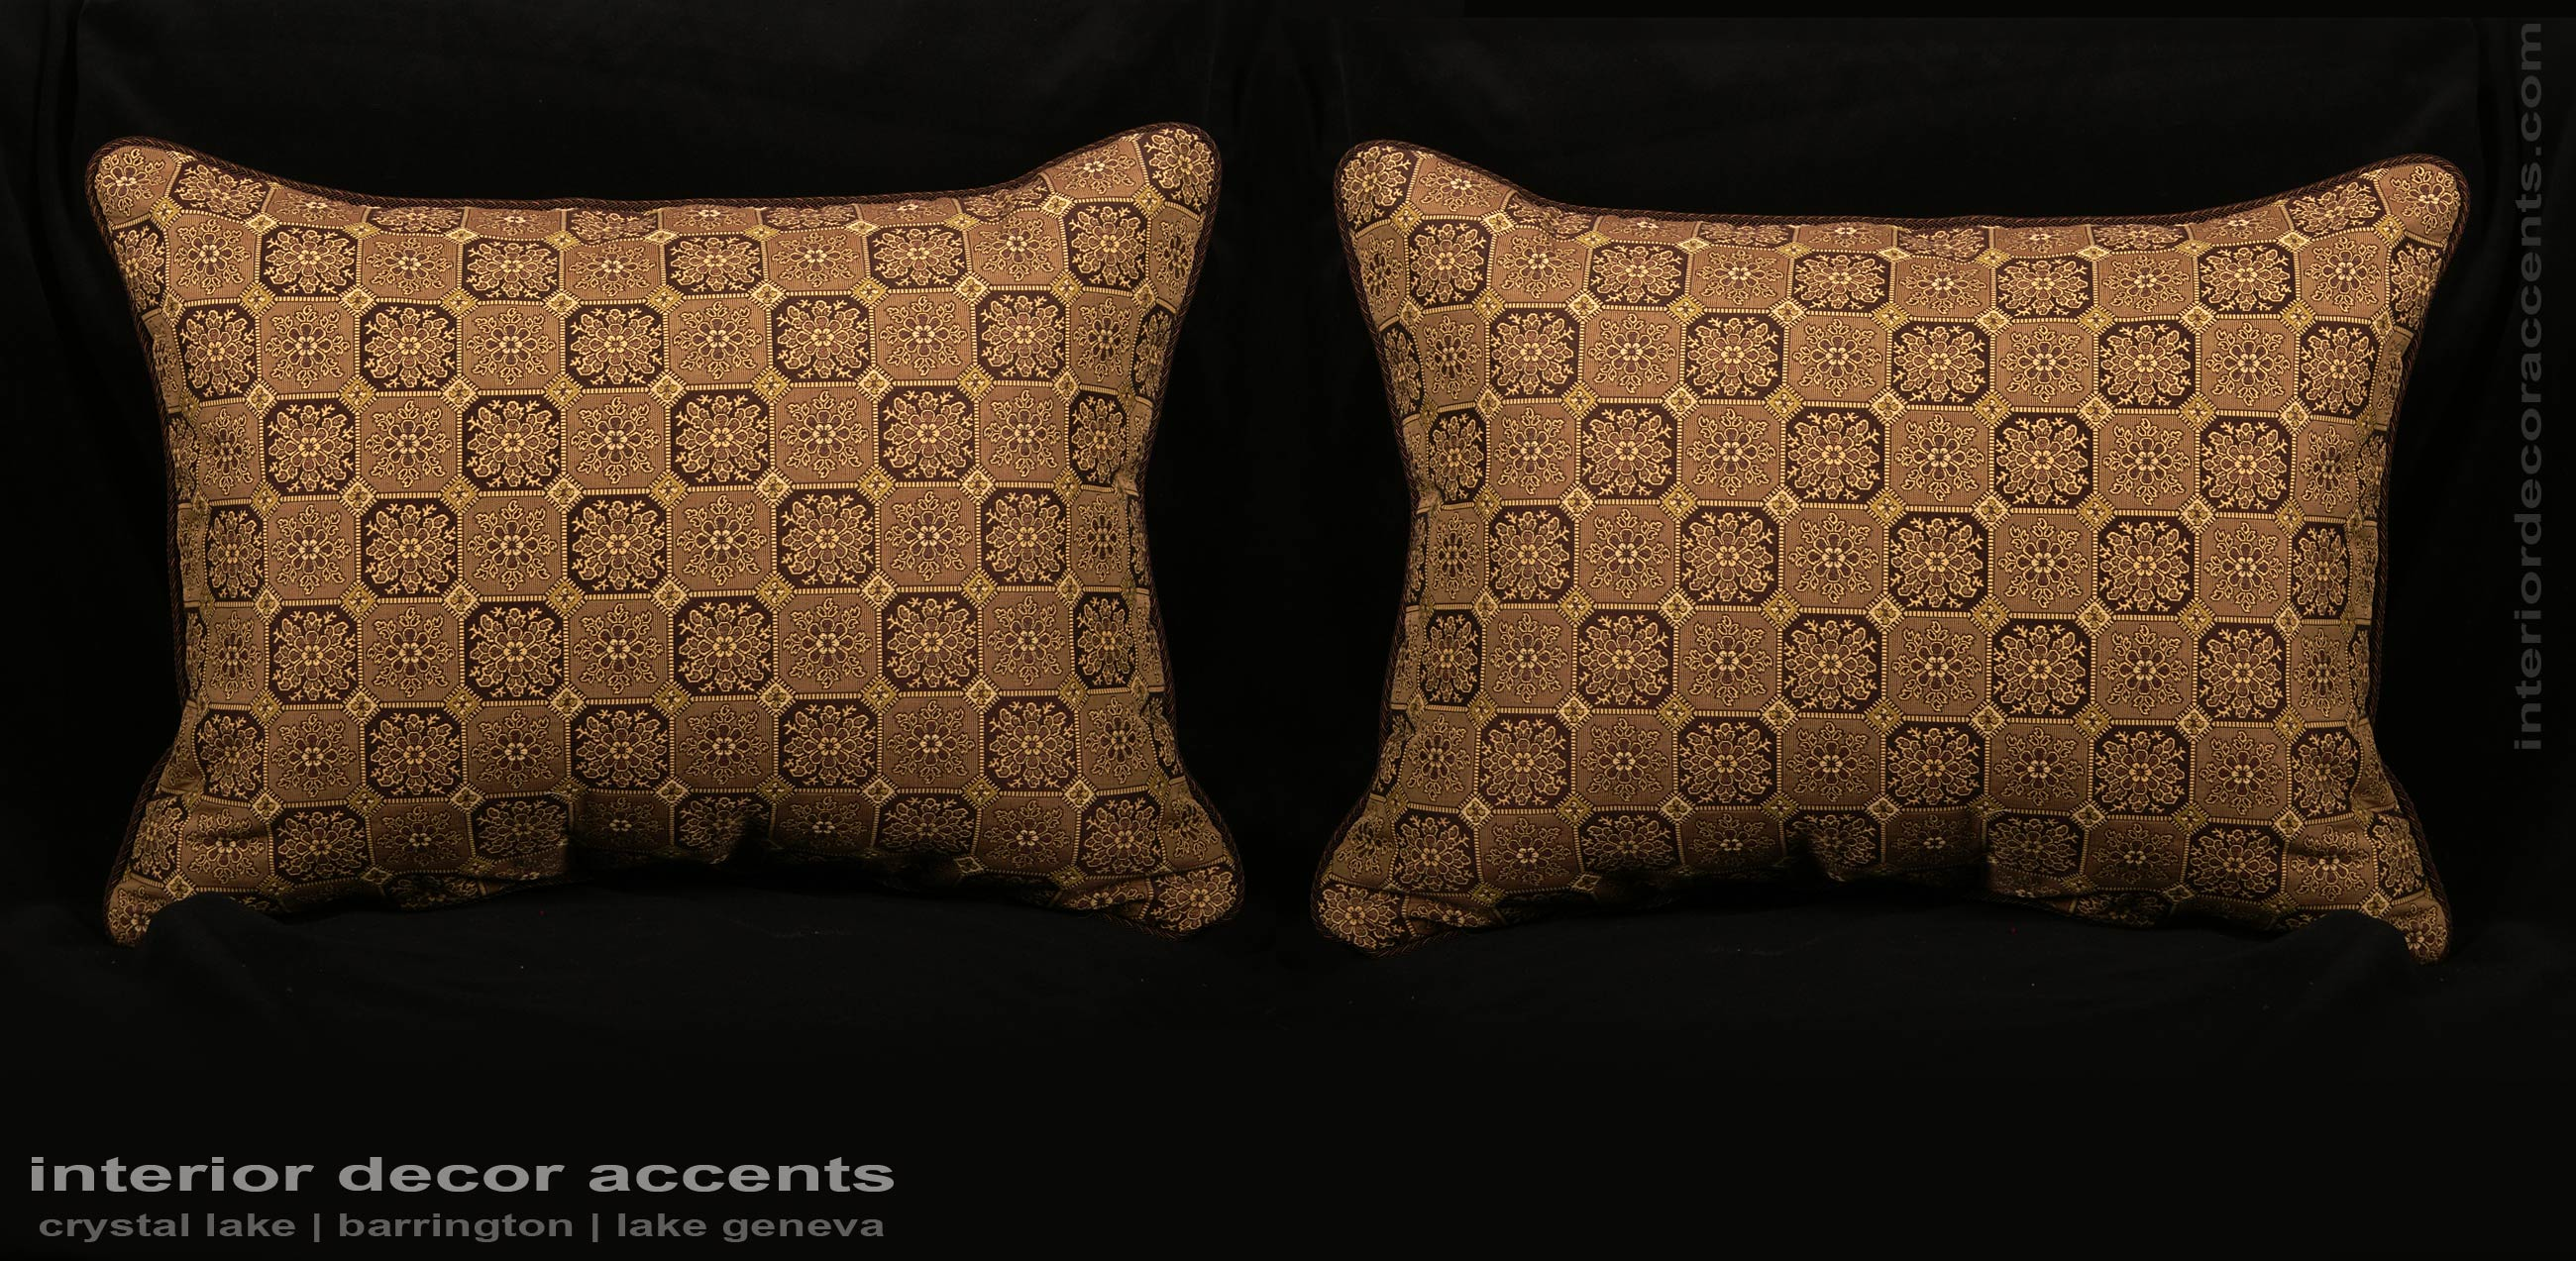 contemporary designer decorative for with brocade elegant couture kravet italian decor stroheim strie pillows floral linen medalion accent velvet two